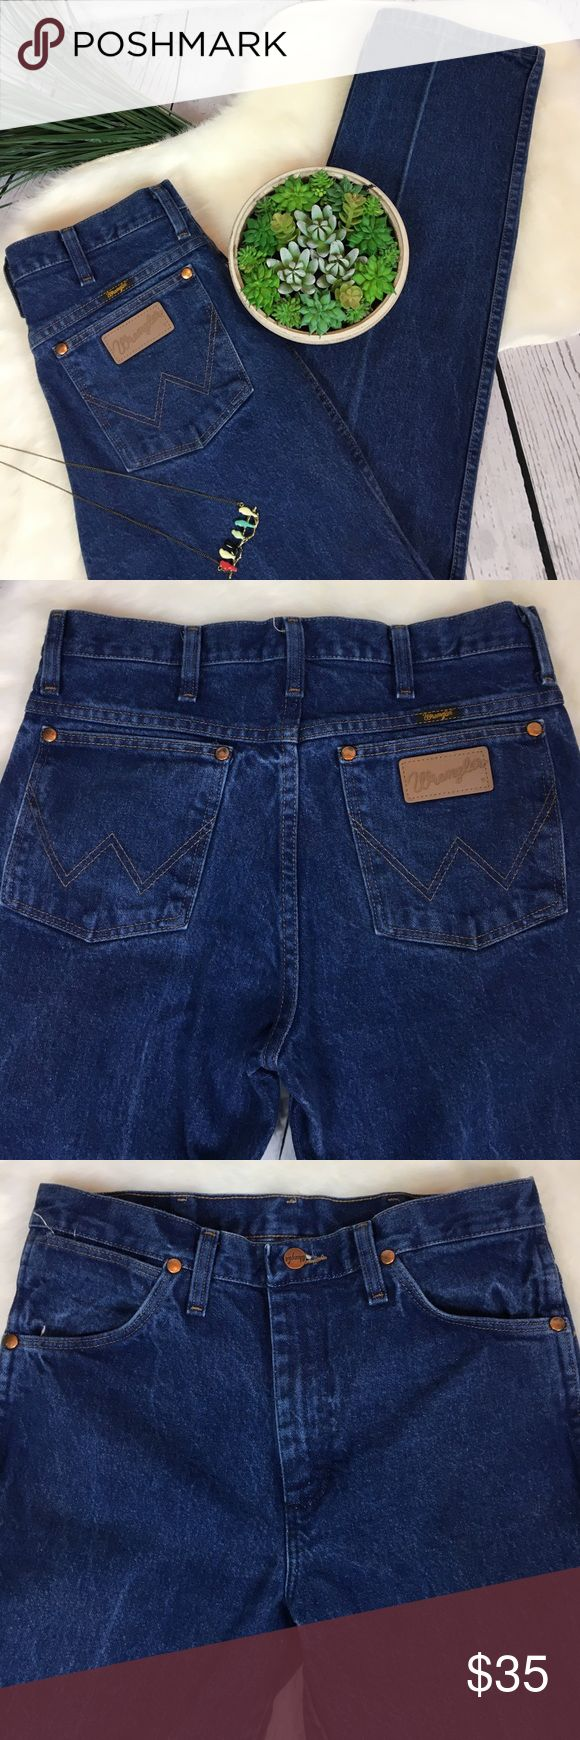 "•HOT• Vintage WRANGLER High Waist Mom Jeans 30x32 Don't. Miss. These.   Vintage WRANGLER High Waist Mom Jeans in Size 30x32. These are a GEM!!! Seriously give new meaning to the phrase 'Mom Jeans' they are ALL sorts of popular right now and nearly impossible to come by!! These are the REAL DEAL!!! Made in Mexico. Vintage. Zipper fly. Straight leg. Great worn-in condition from a smoke free home ... PLEASE check measurements!!  Measurements (flat) Waist: 15"" Rise: 11"" Hips: 19"" Inseam: 32"" Leg…"